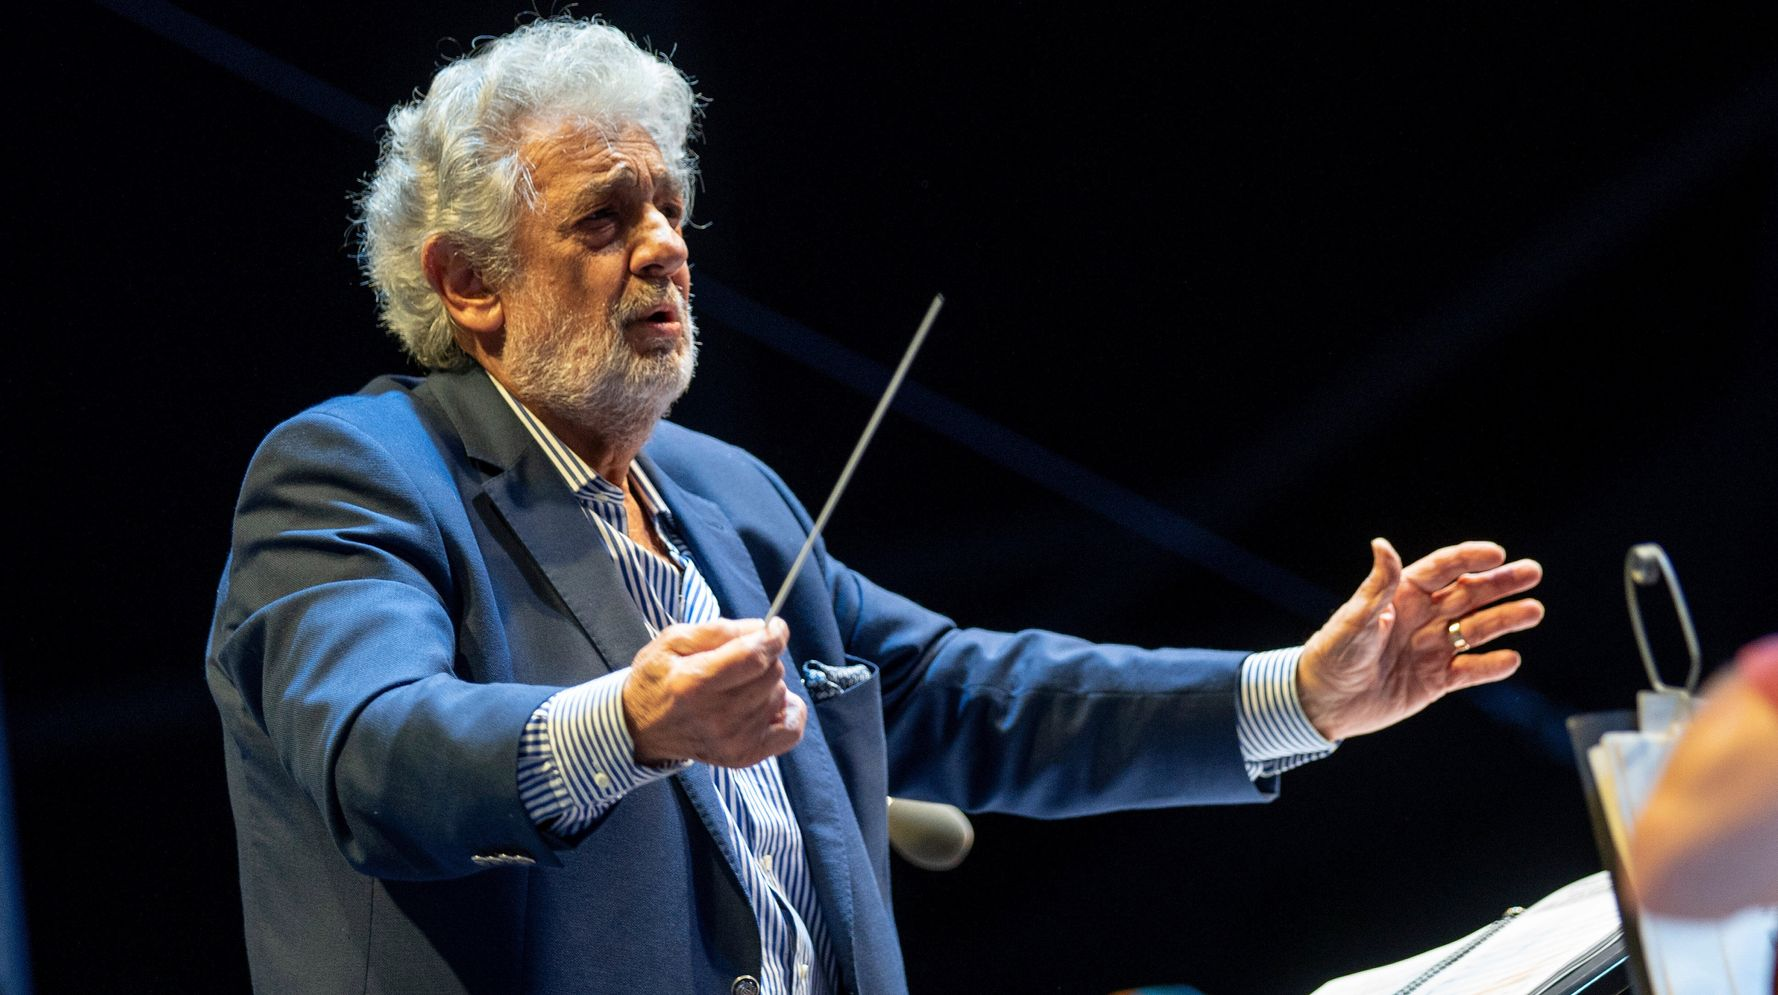 Opera Legend Placido Domingo Faces New Accusations Of Sexual Harassment